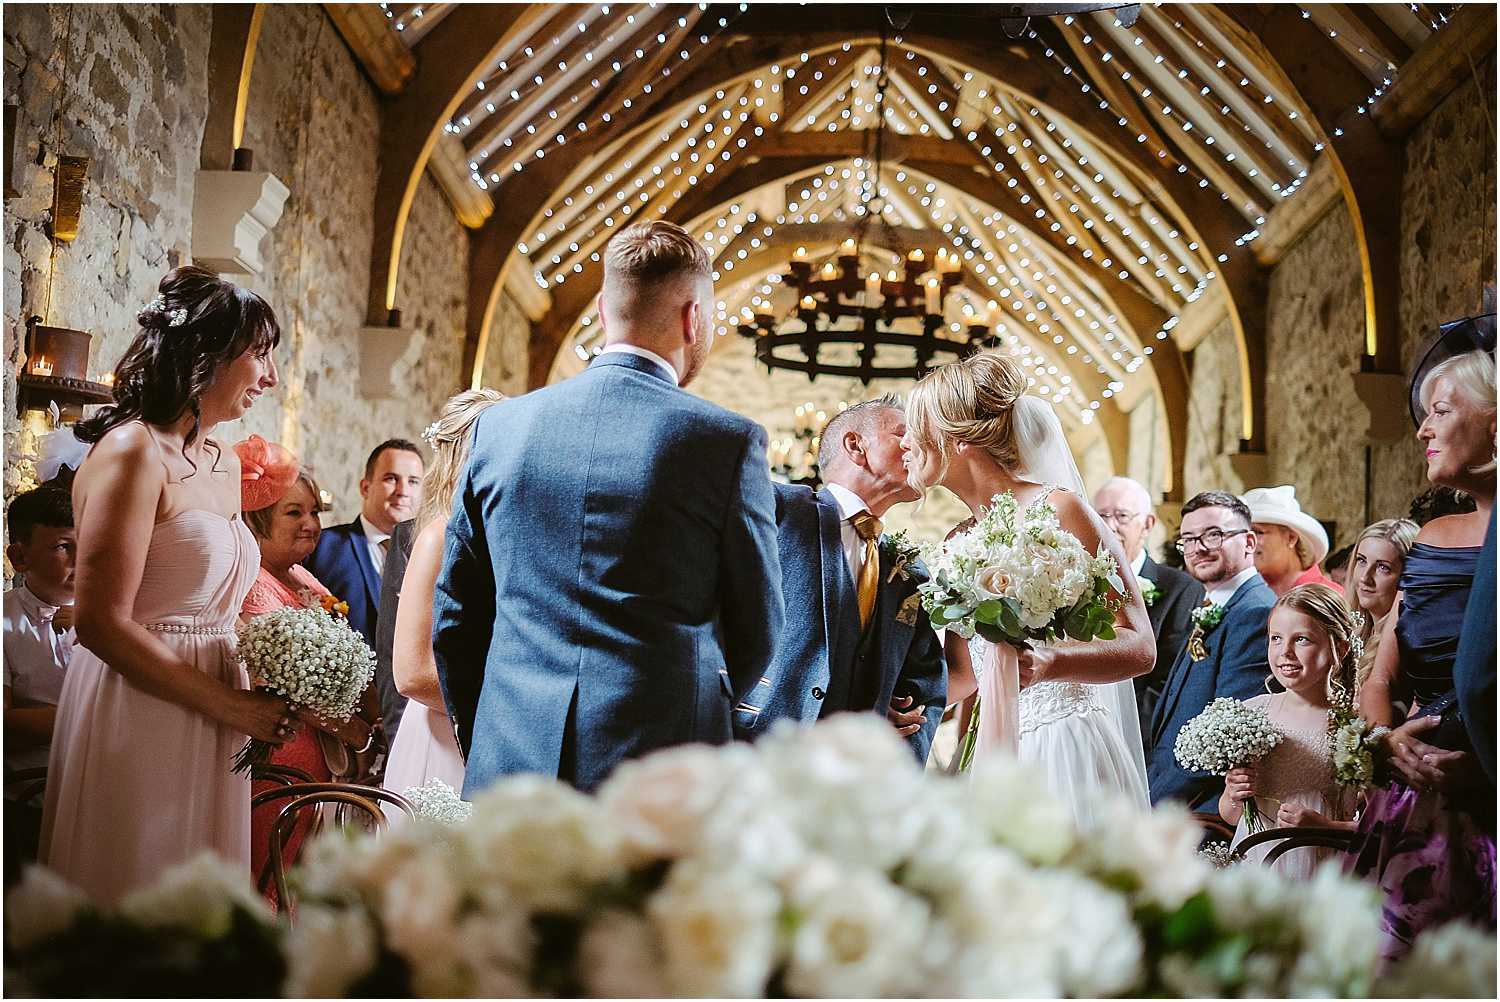 Wedding at Healey Barn - wedding photography by www.2tonephotography.co.uk 040.jpg